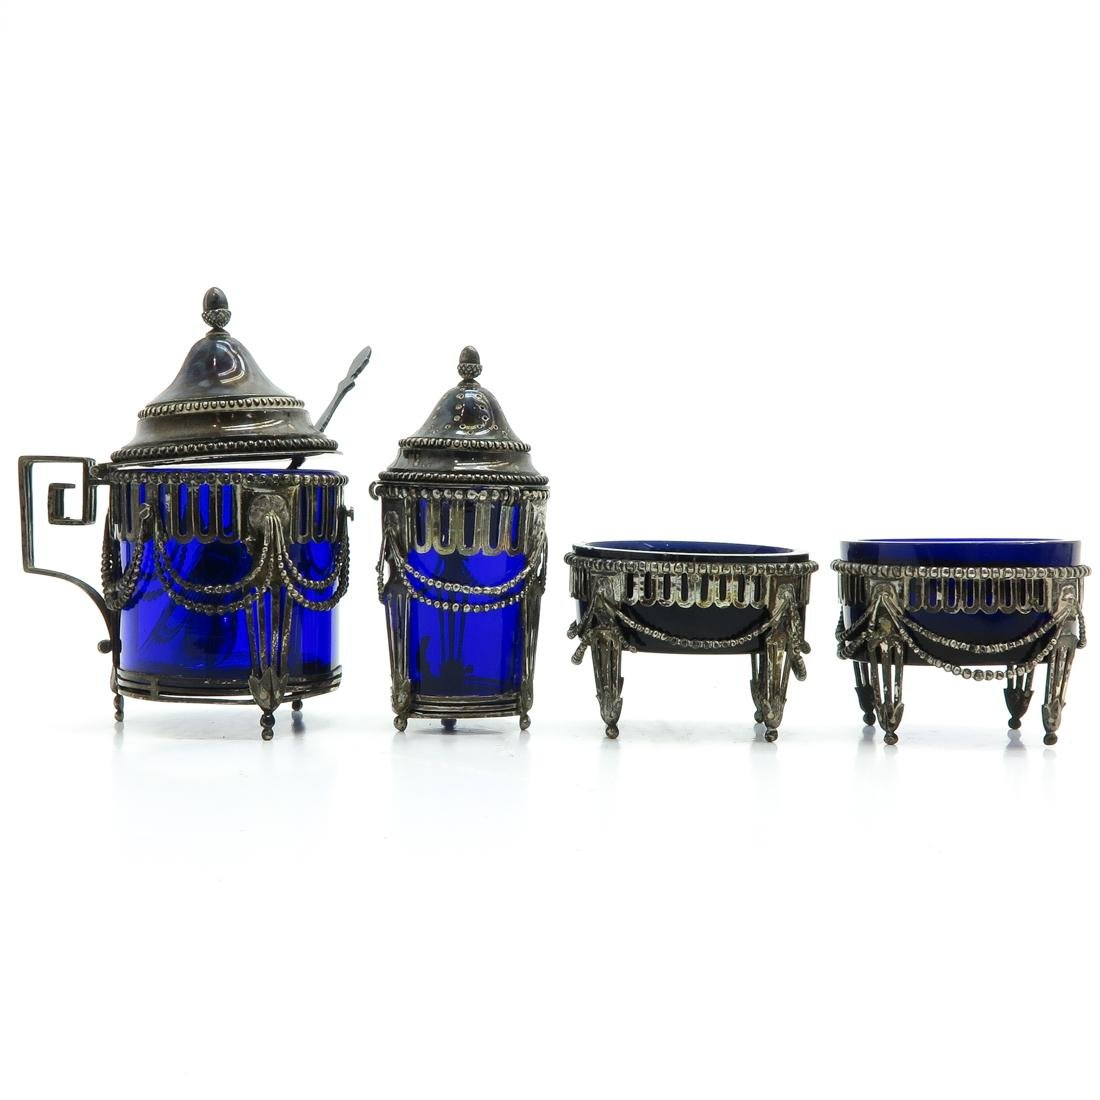 Dutch Silver and Cobalt Blue Glass Condiment Servers